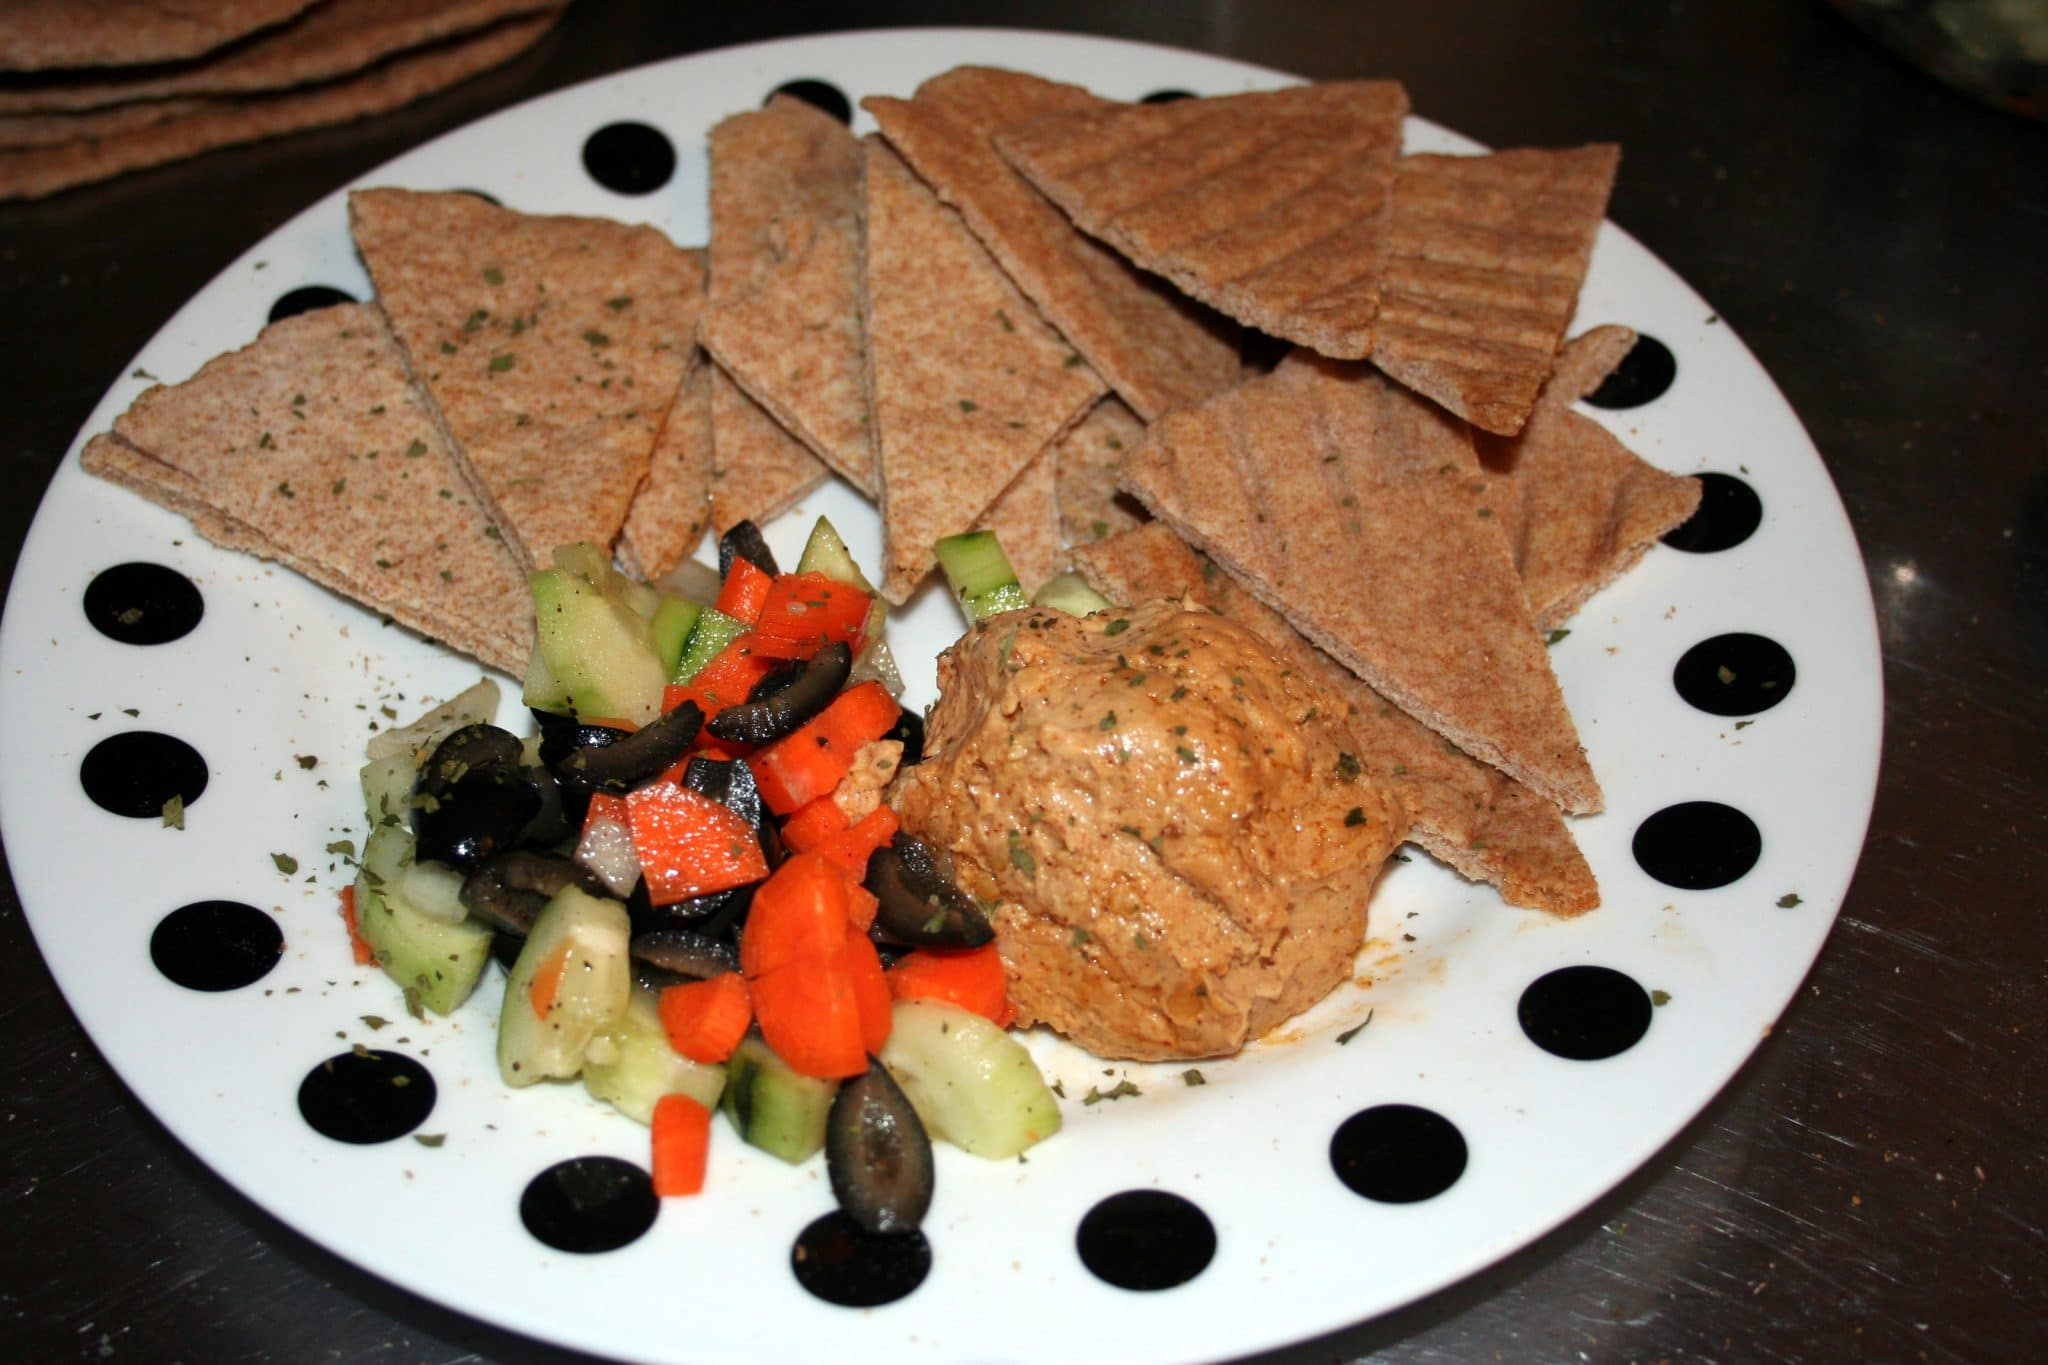 Vegan flatbread cut into triangles on plate with carrots, olives and zucchini